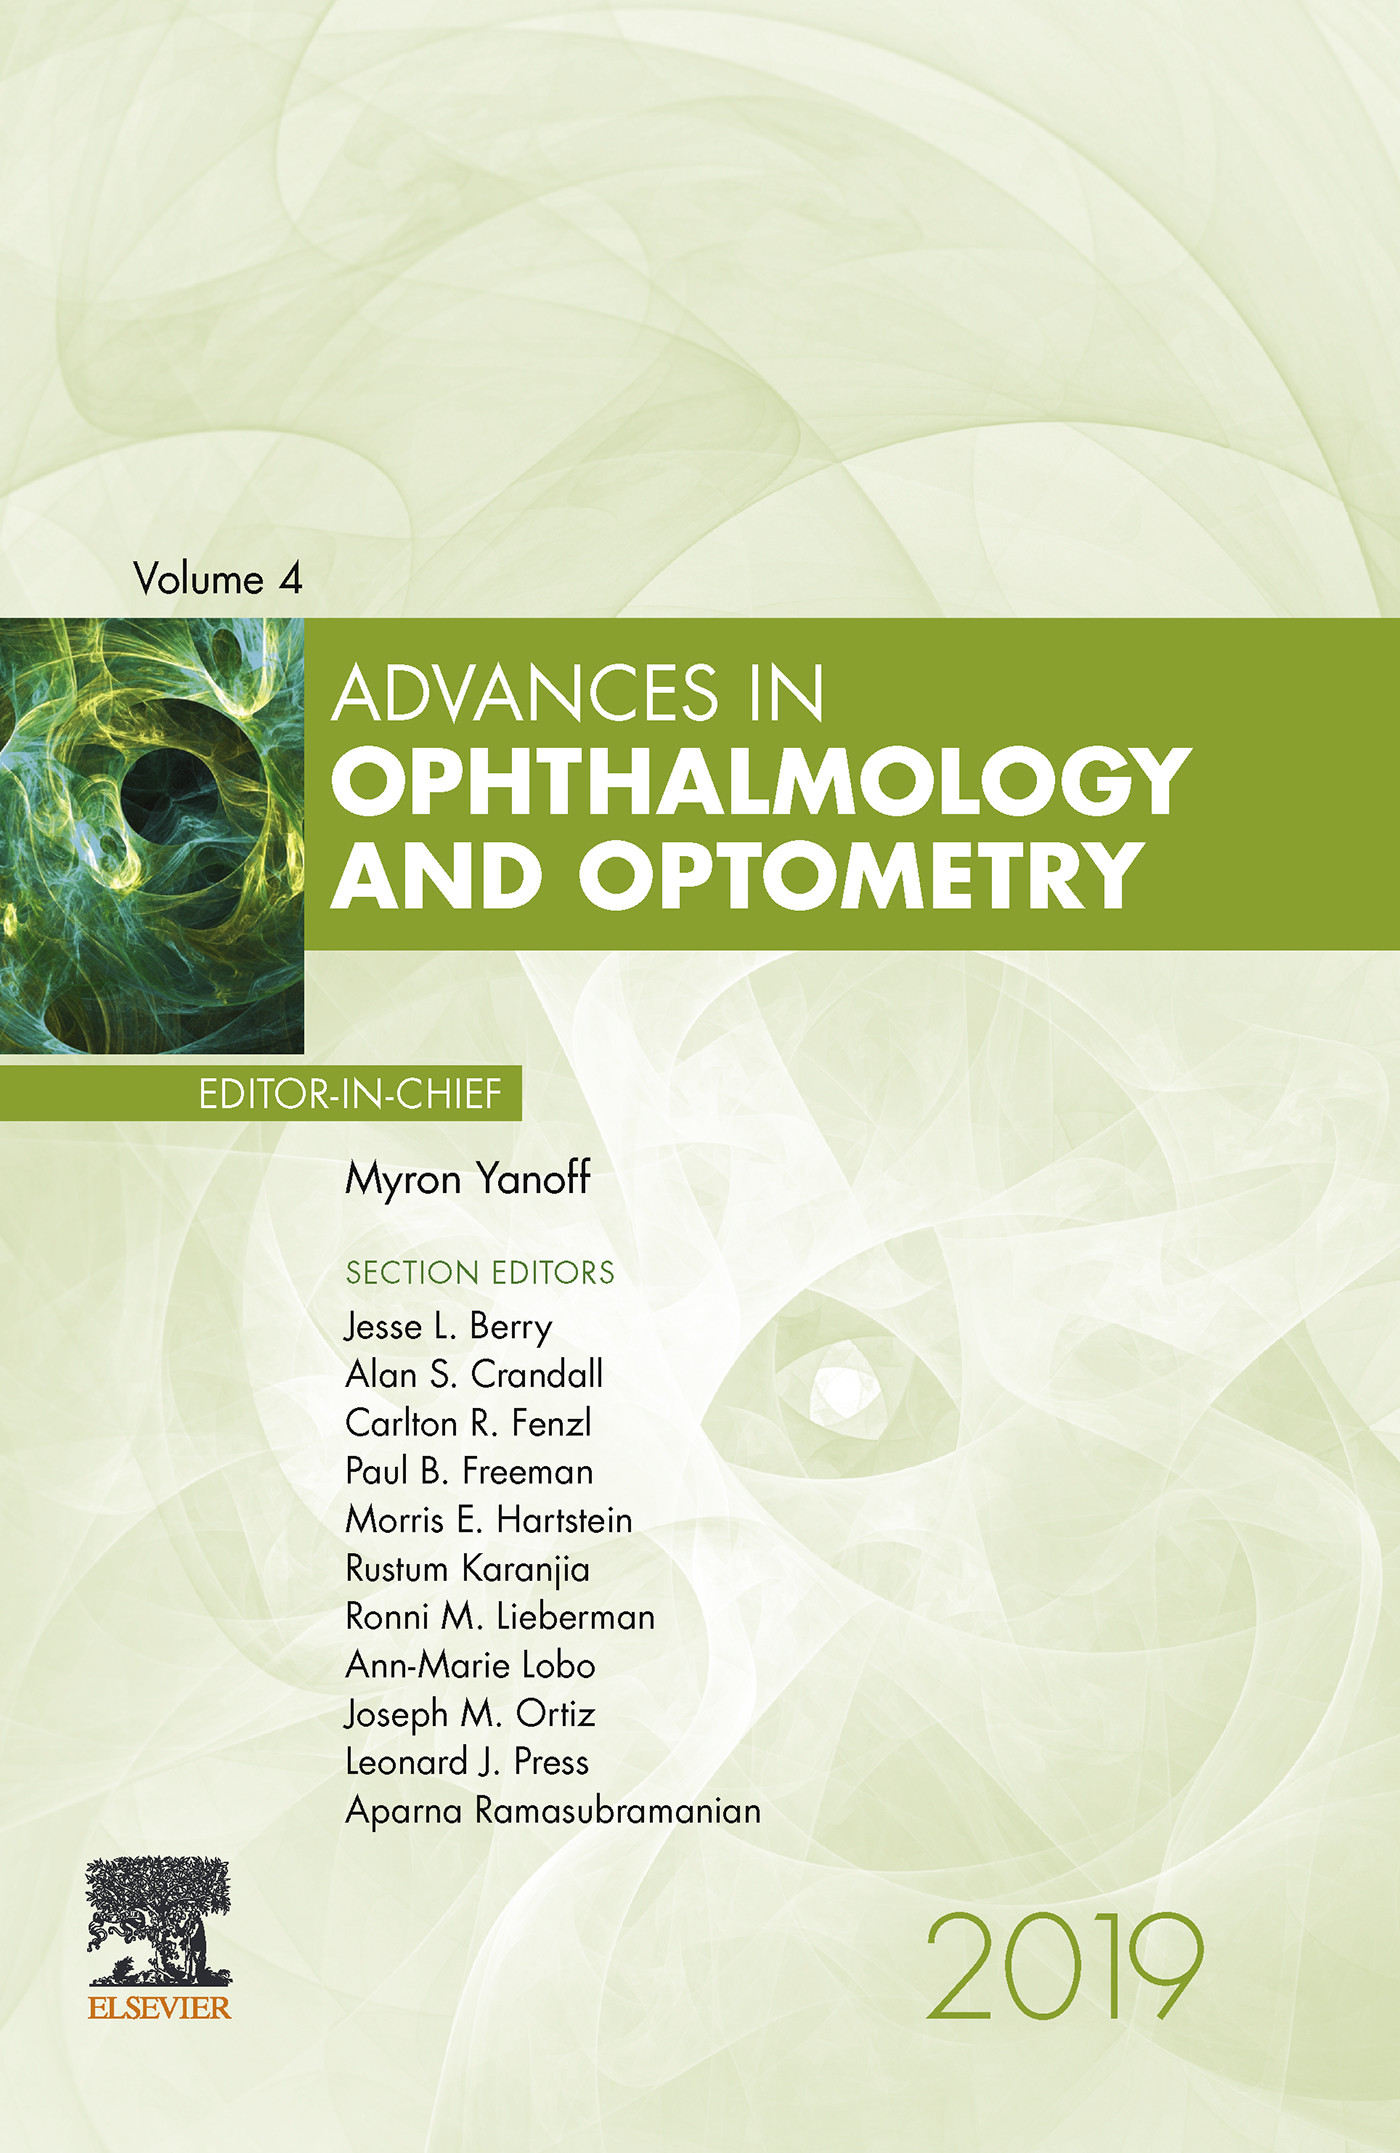 Advances in Ophthalmology and Optometry E-Book